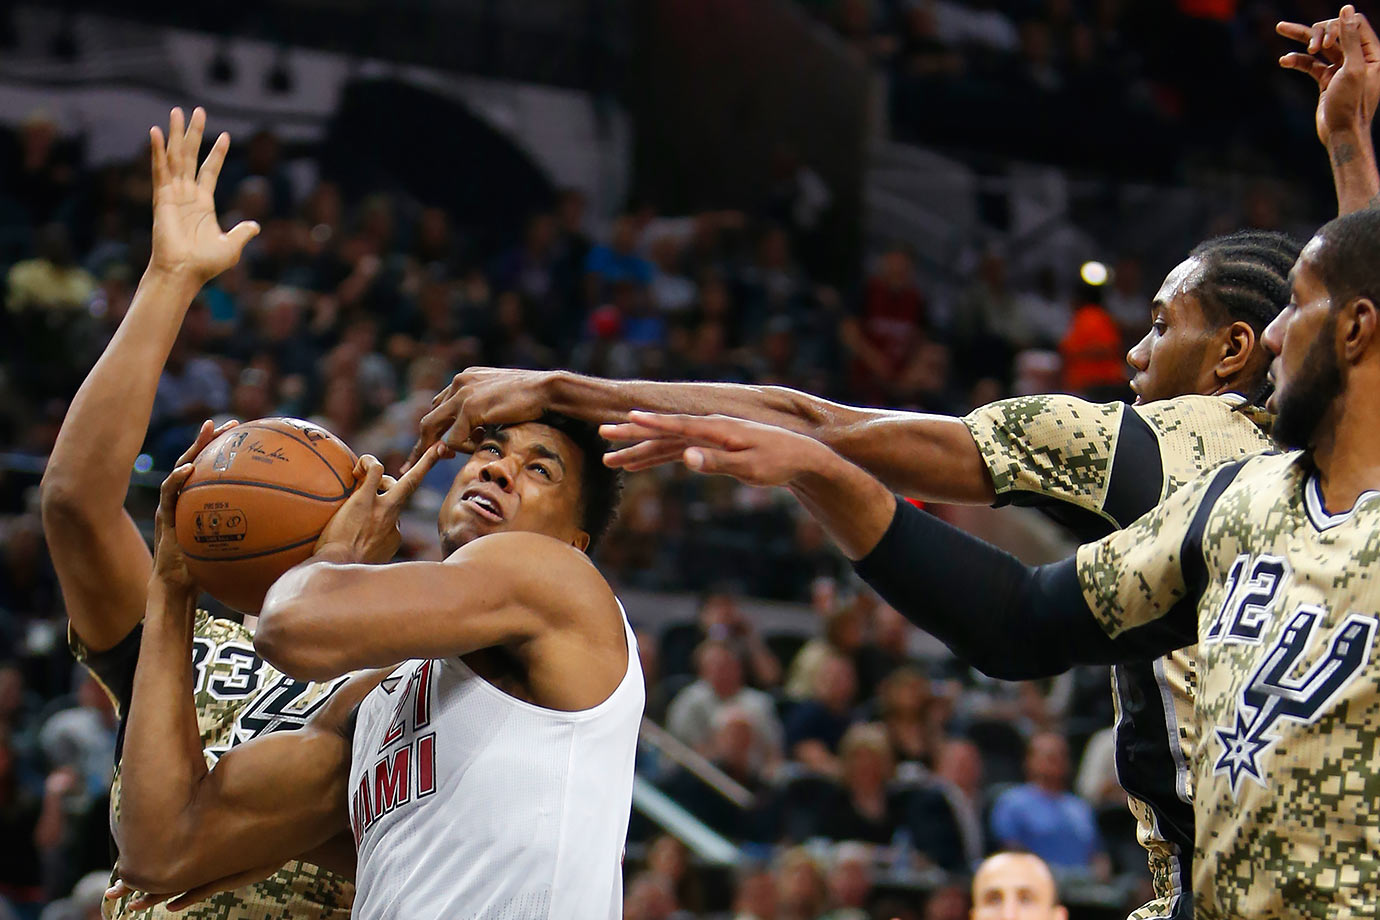 Miami Heat center Hassan Whiteside has his shot blocked by San Antonio Spurs forward Kawhi Leonard during their game in San Antonio, Texas.